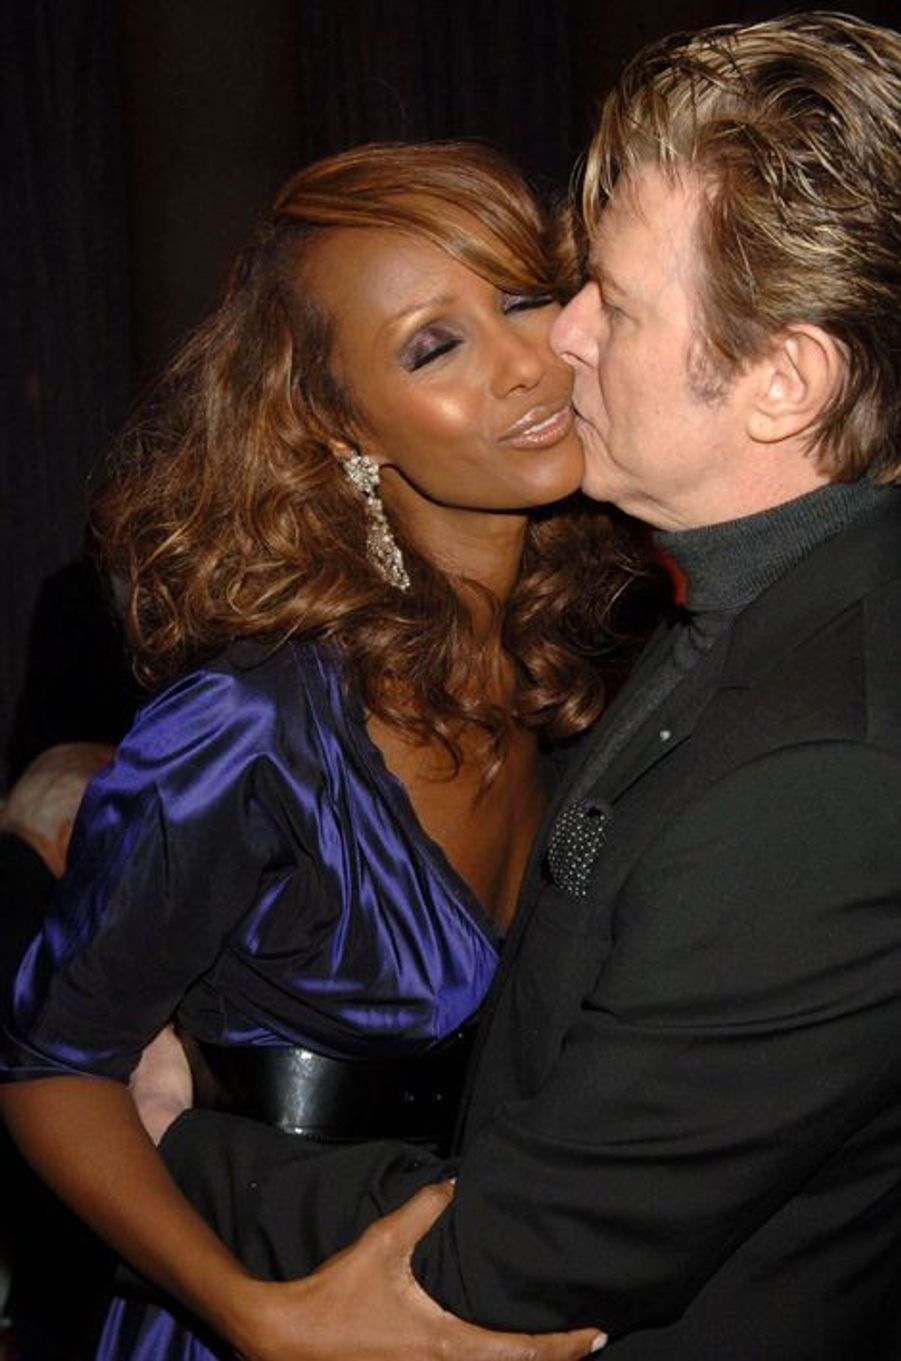 David Bowie et Iman, avril 2006